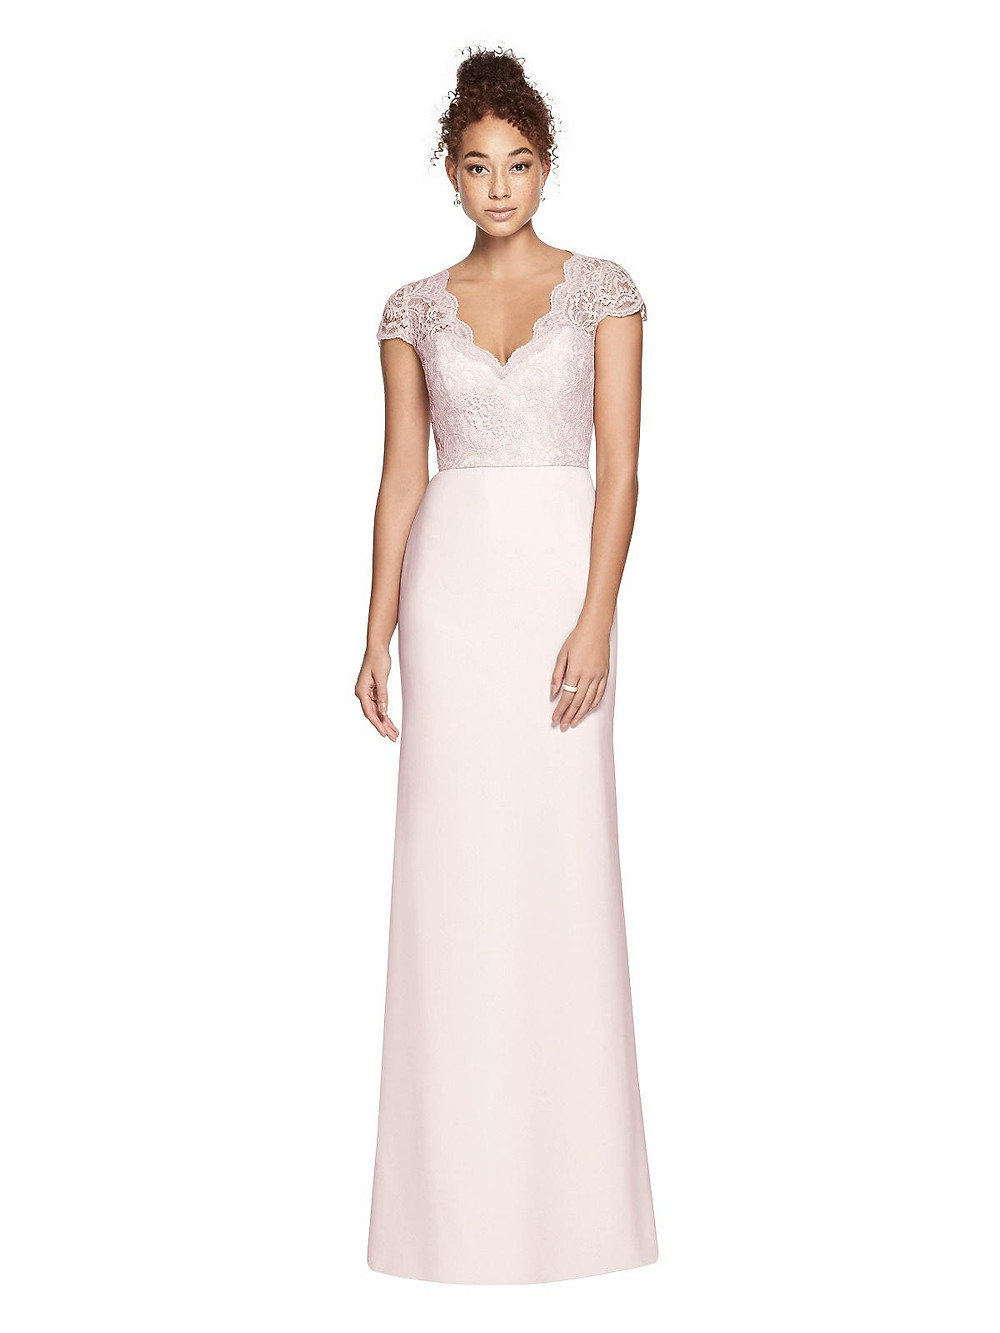 Blush lace Bridesmaid dress, 3023 by Dessy, available at OSh Gosh Gowns boutique in Lincolnshire